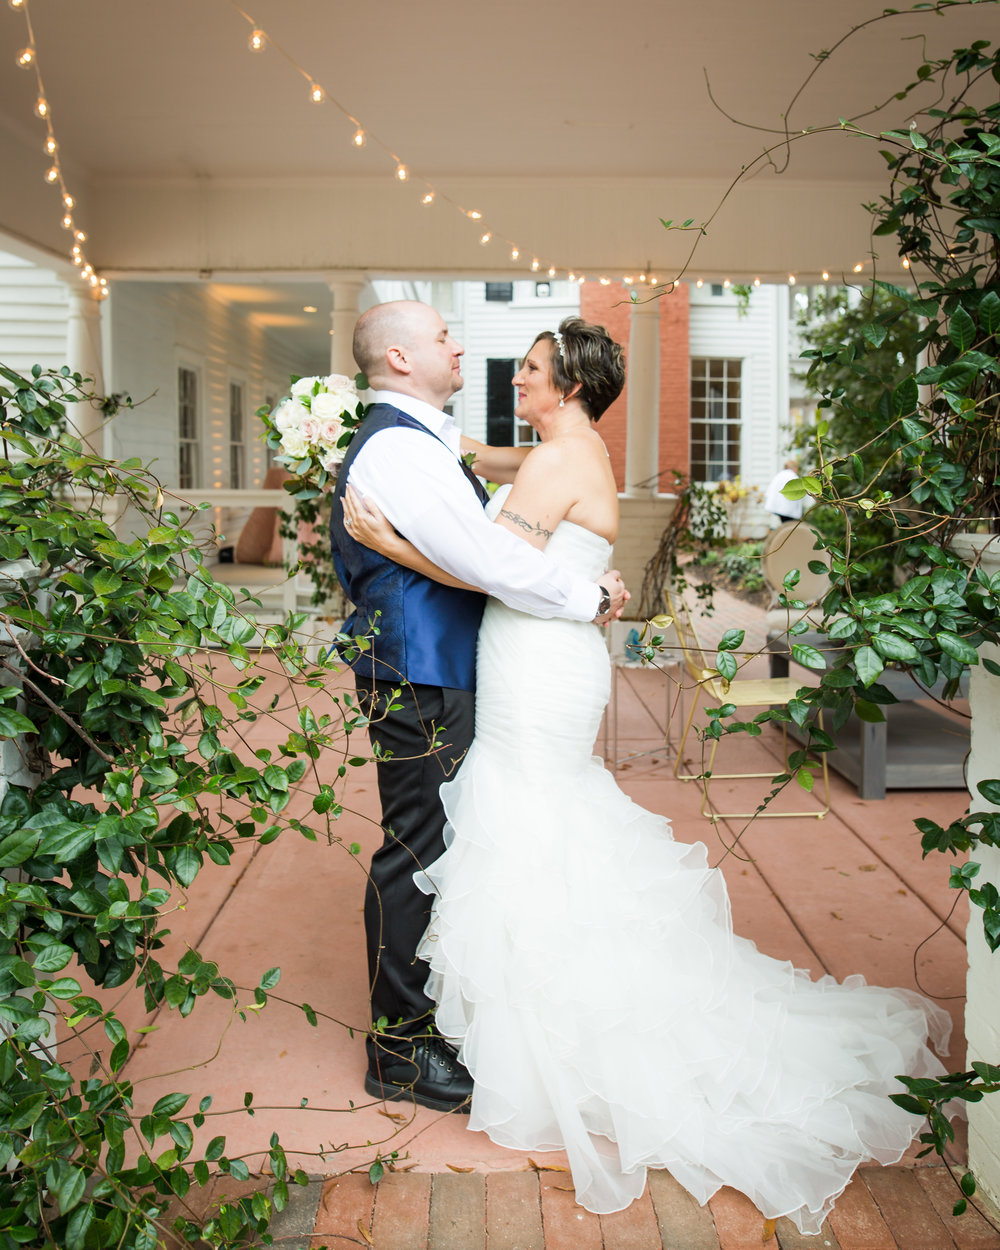 Nine19 Photography Mad Dash Weddings Raleigh NC Wedding Photographer-7991.jpg